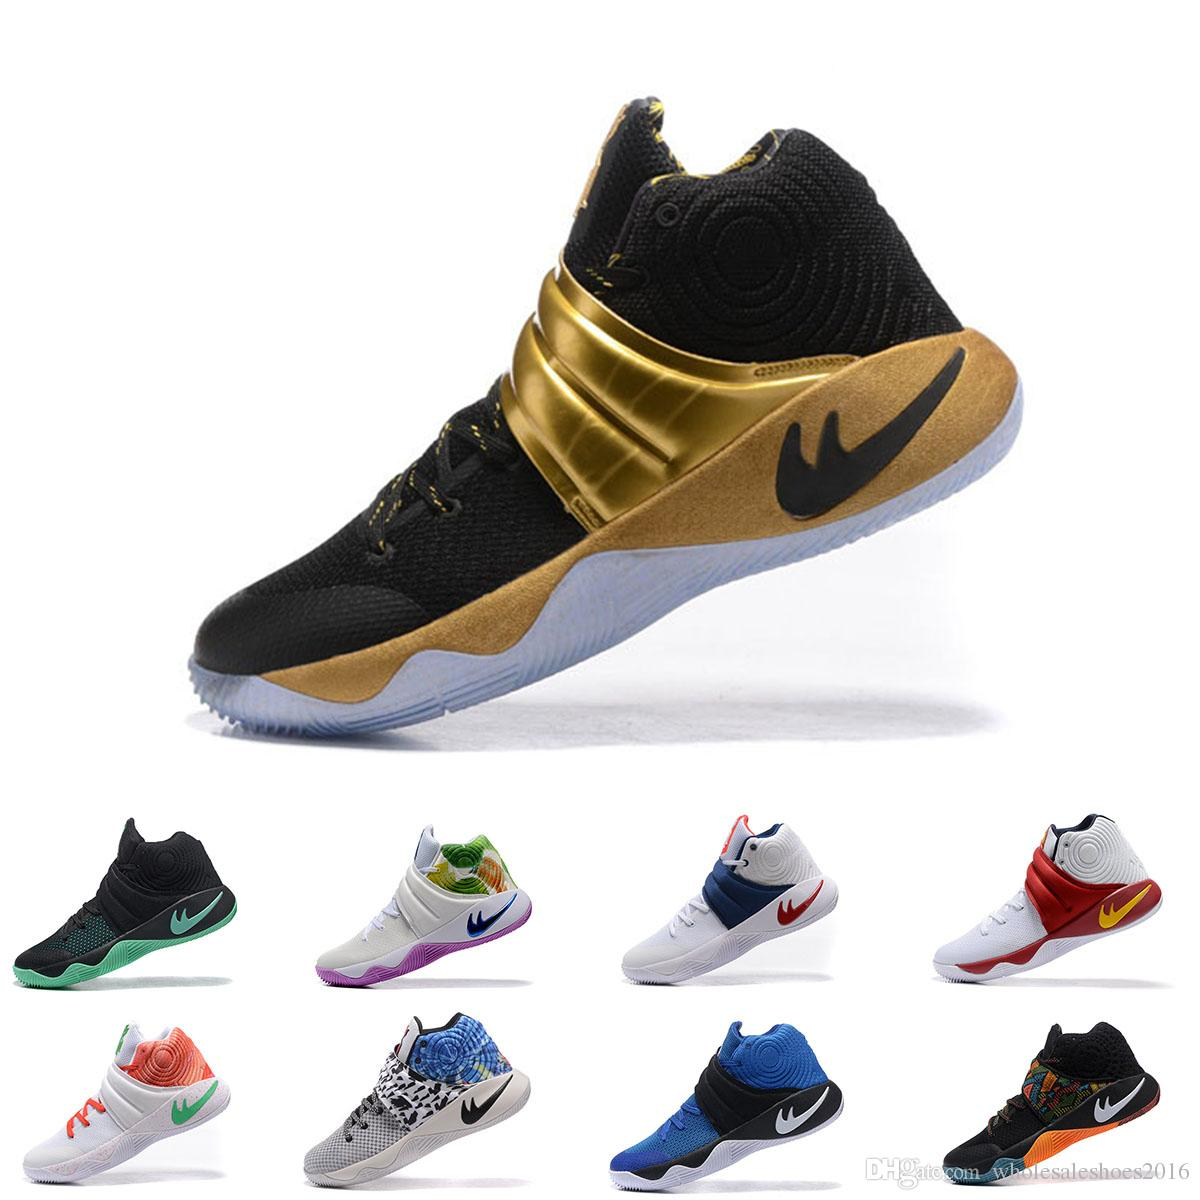 b947048d481 kd running shoes kyire irving shoes